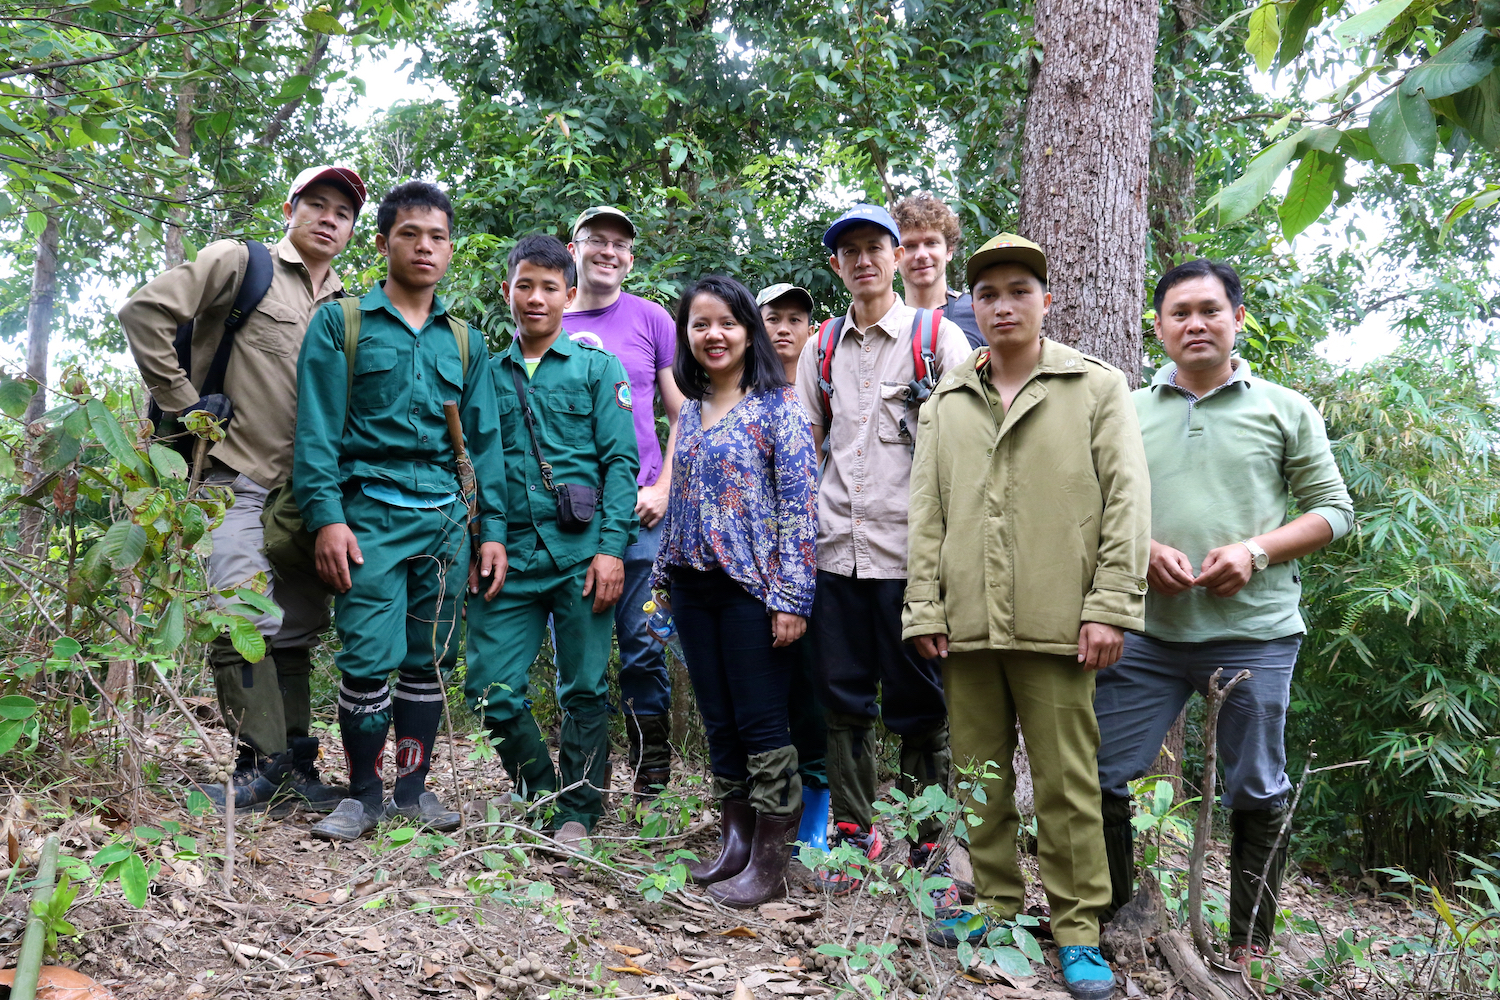 9 men and 1 women in forest, smiling at camera.